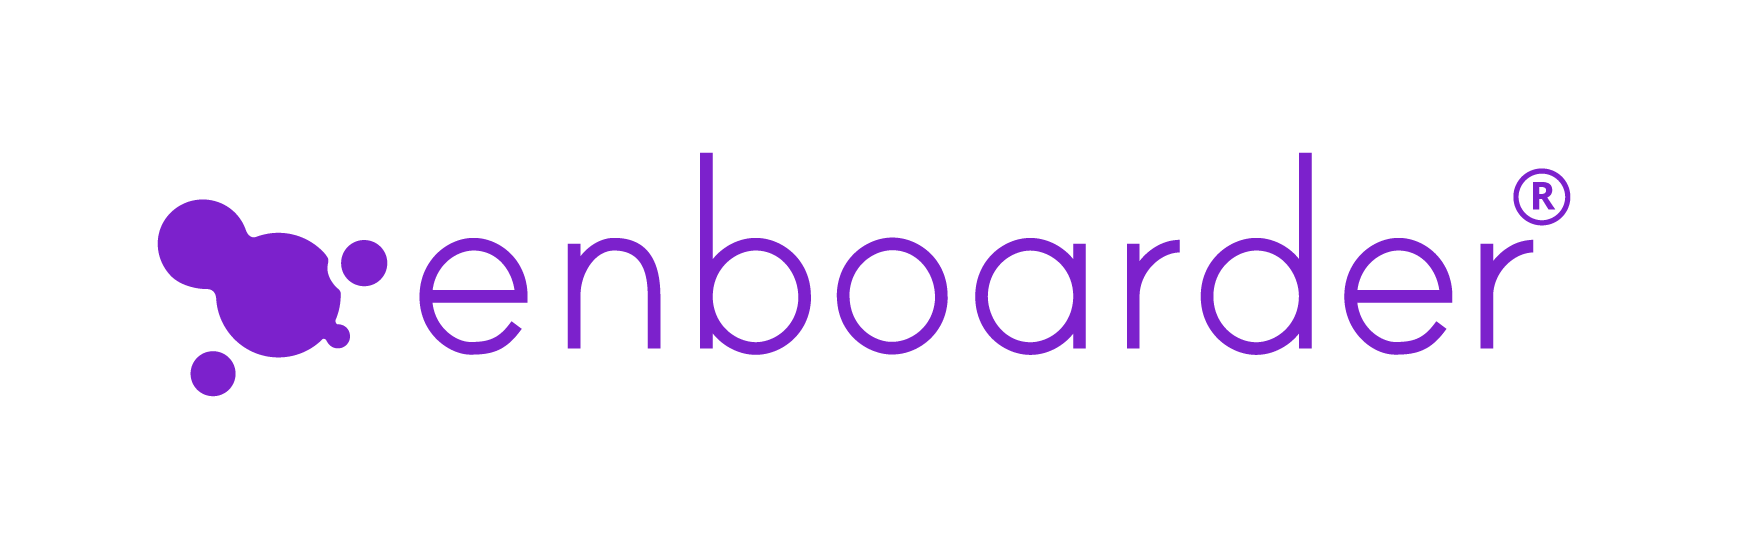 enboarder-Logos-landscape-colour-purple-R